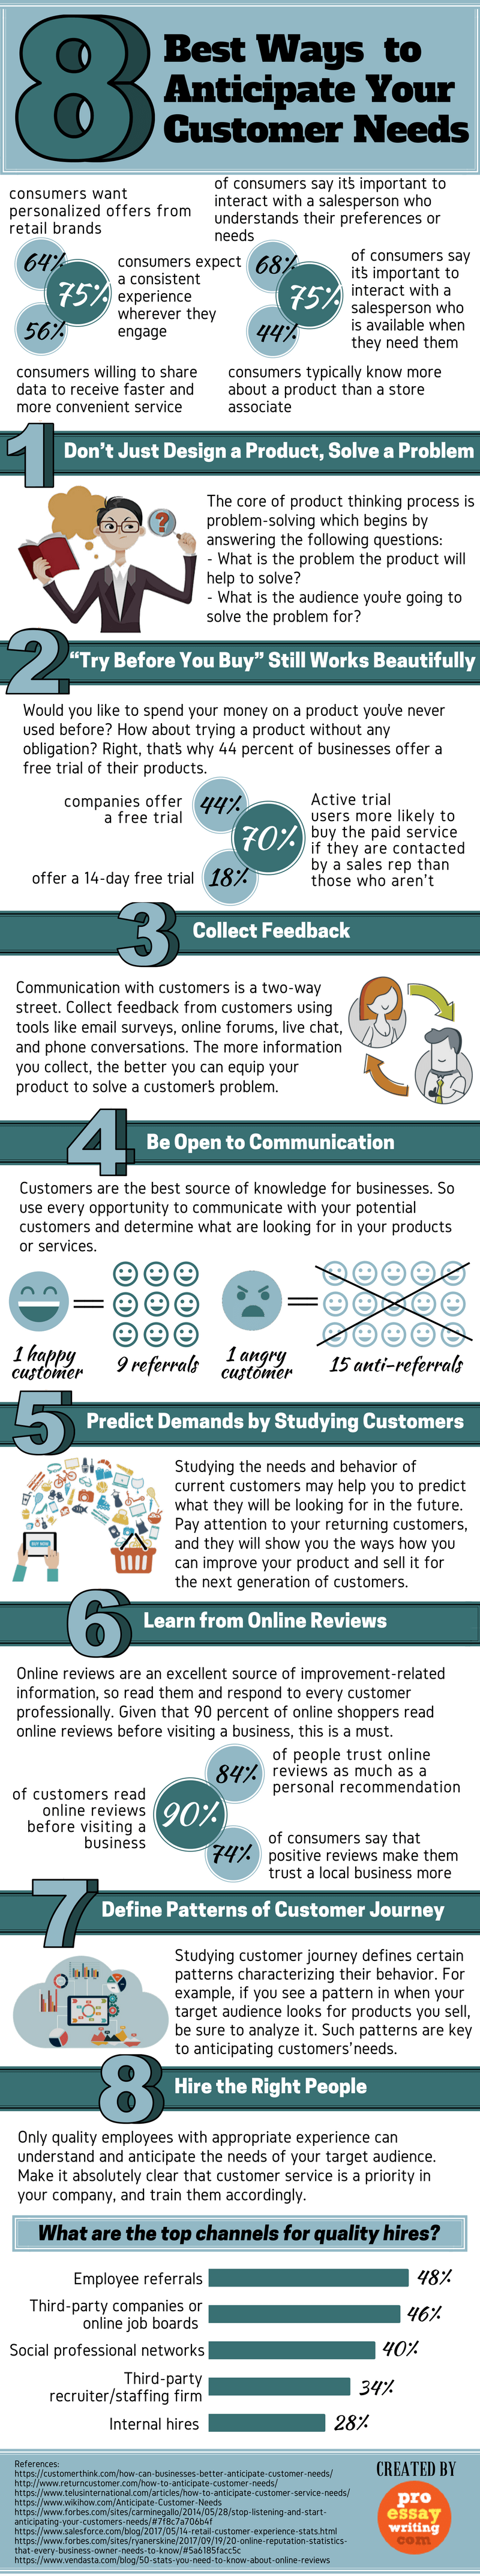 best ways to anticipate your customer needs infographic for woblogger lucy benton